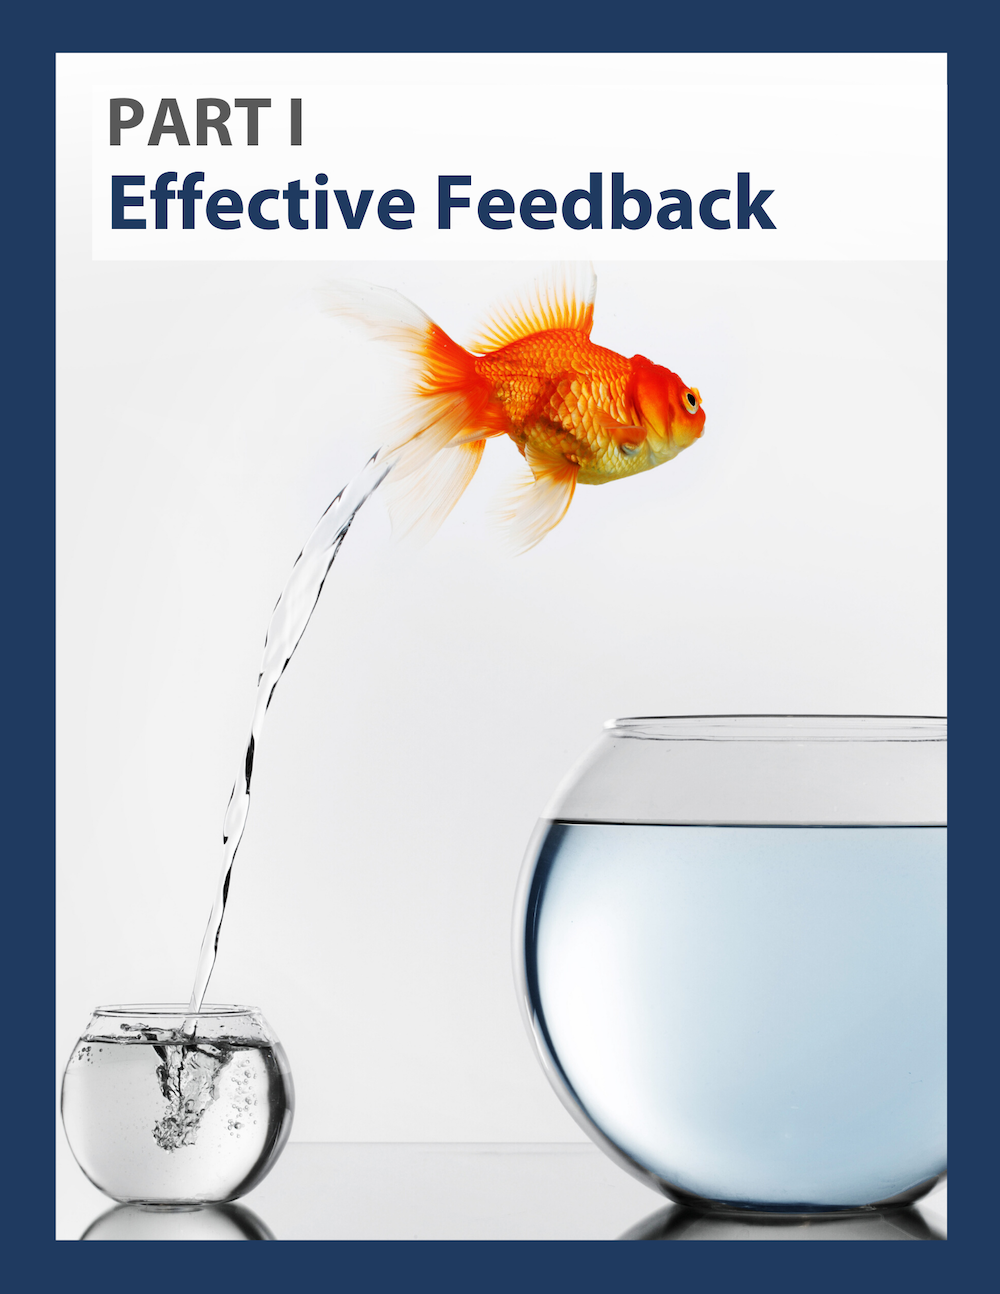 Link to a PDF  - Part 1: Effective Feedback